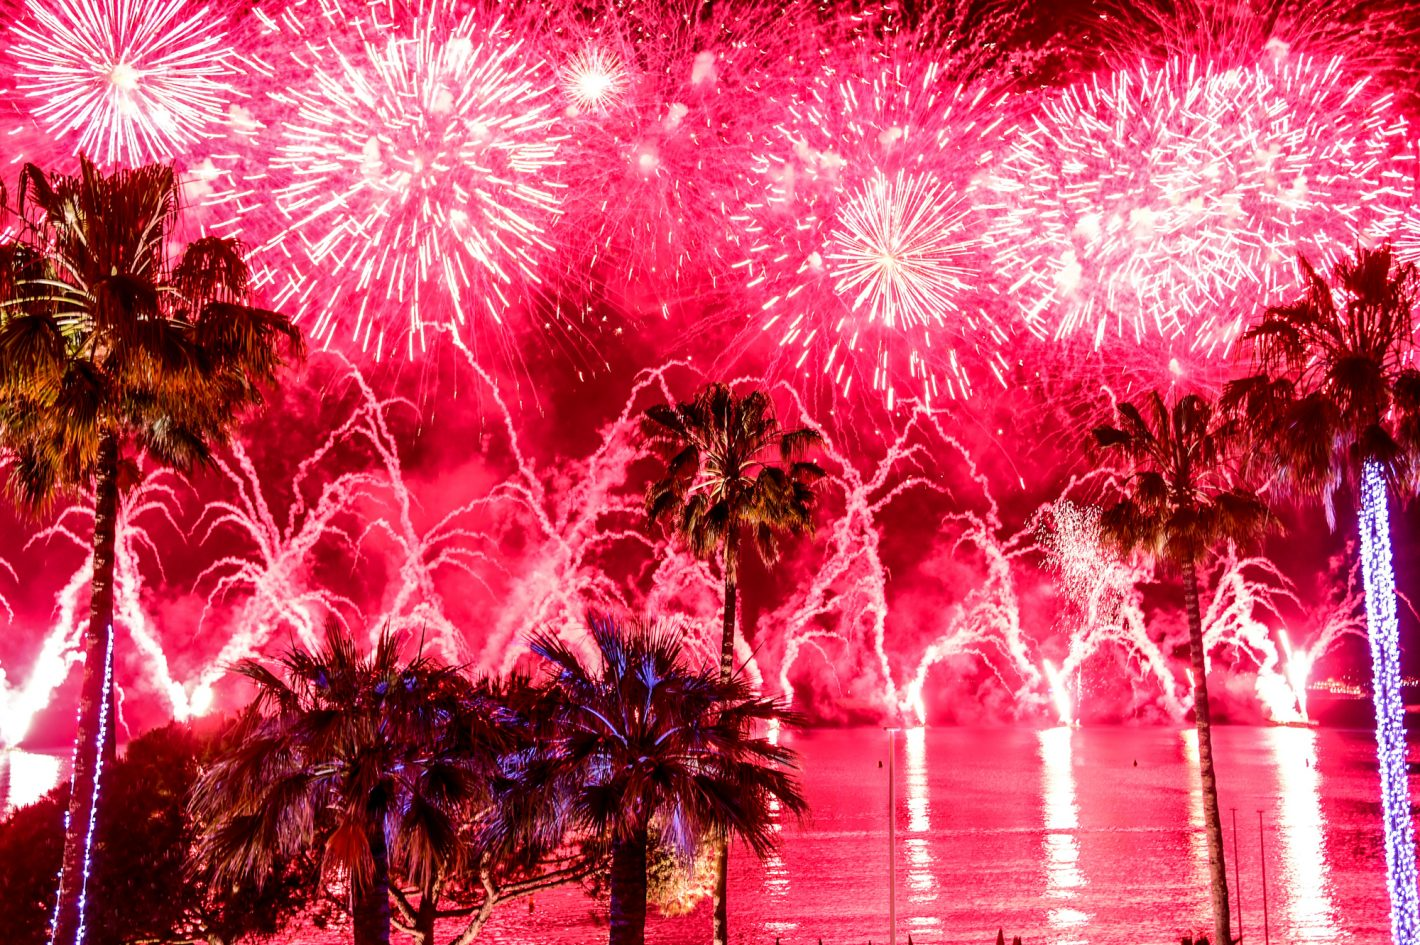 Firework for SOLO a starwars story party par Anthony Ghnassia pour Cannes 2018